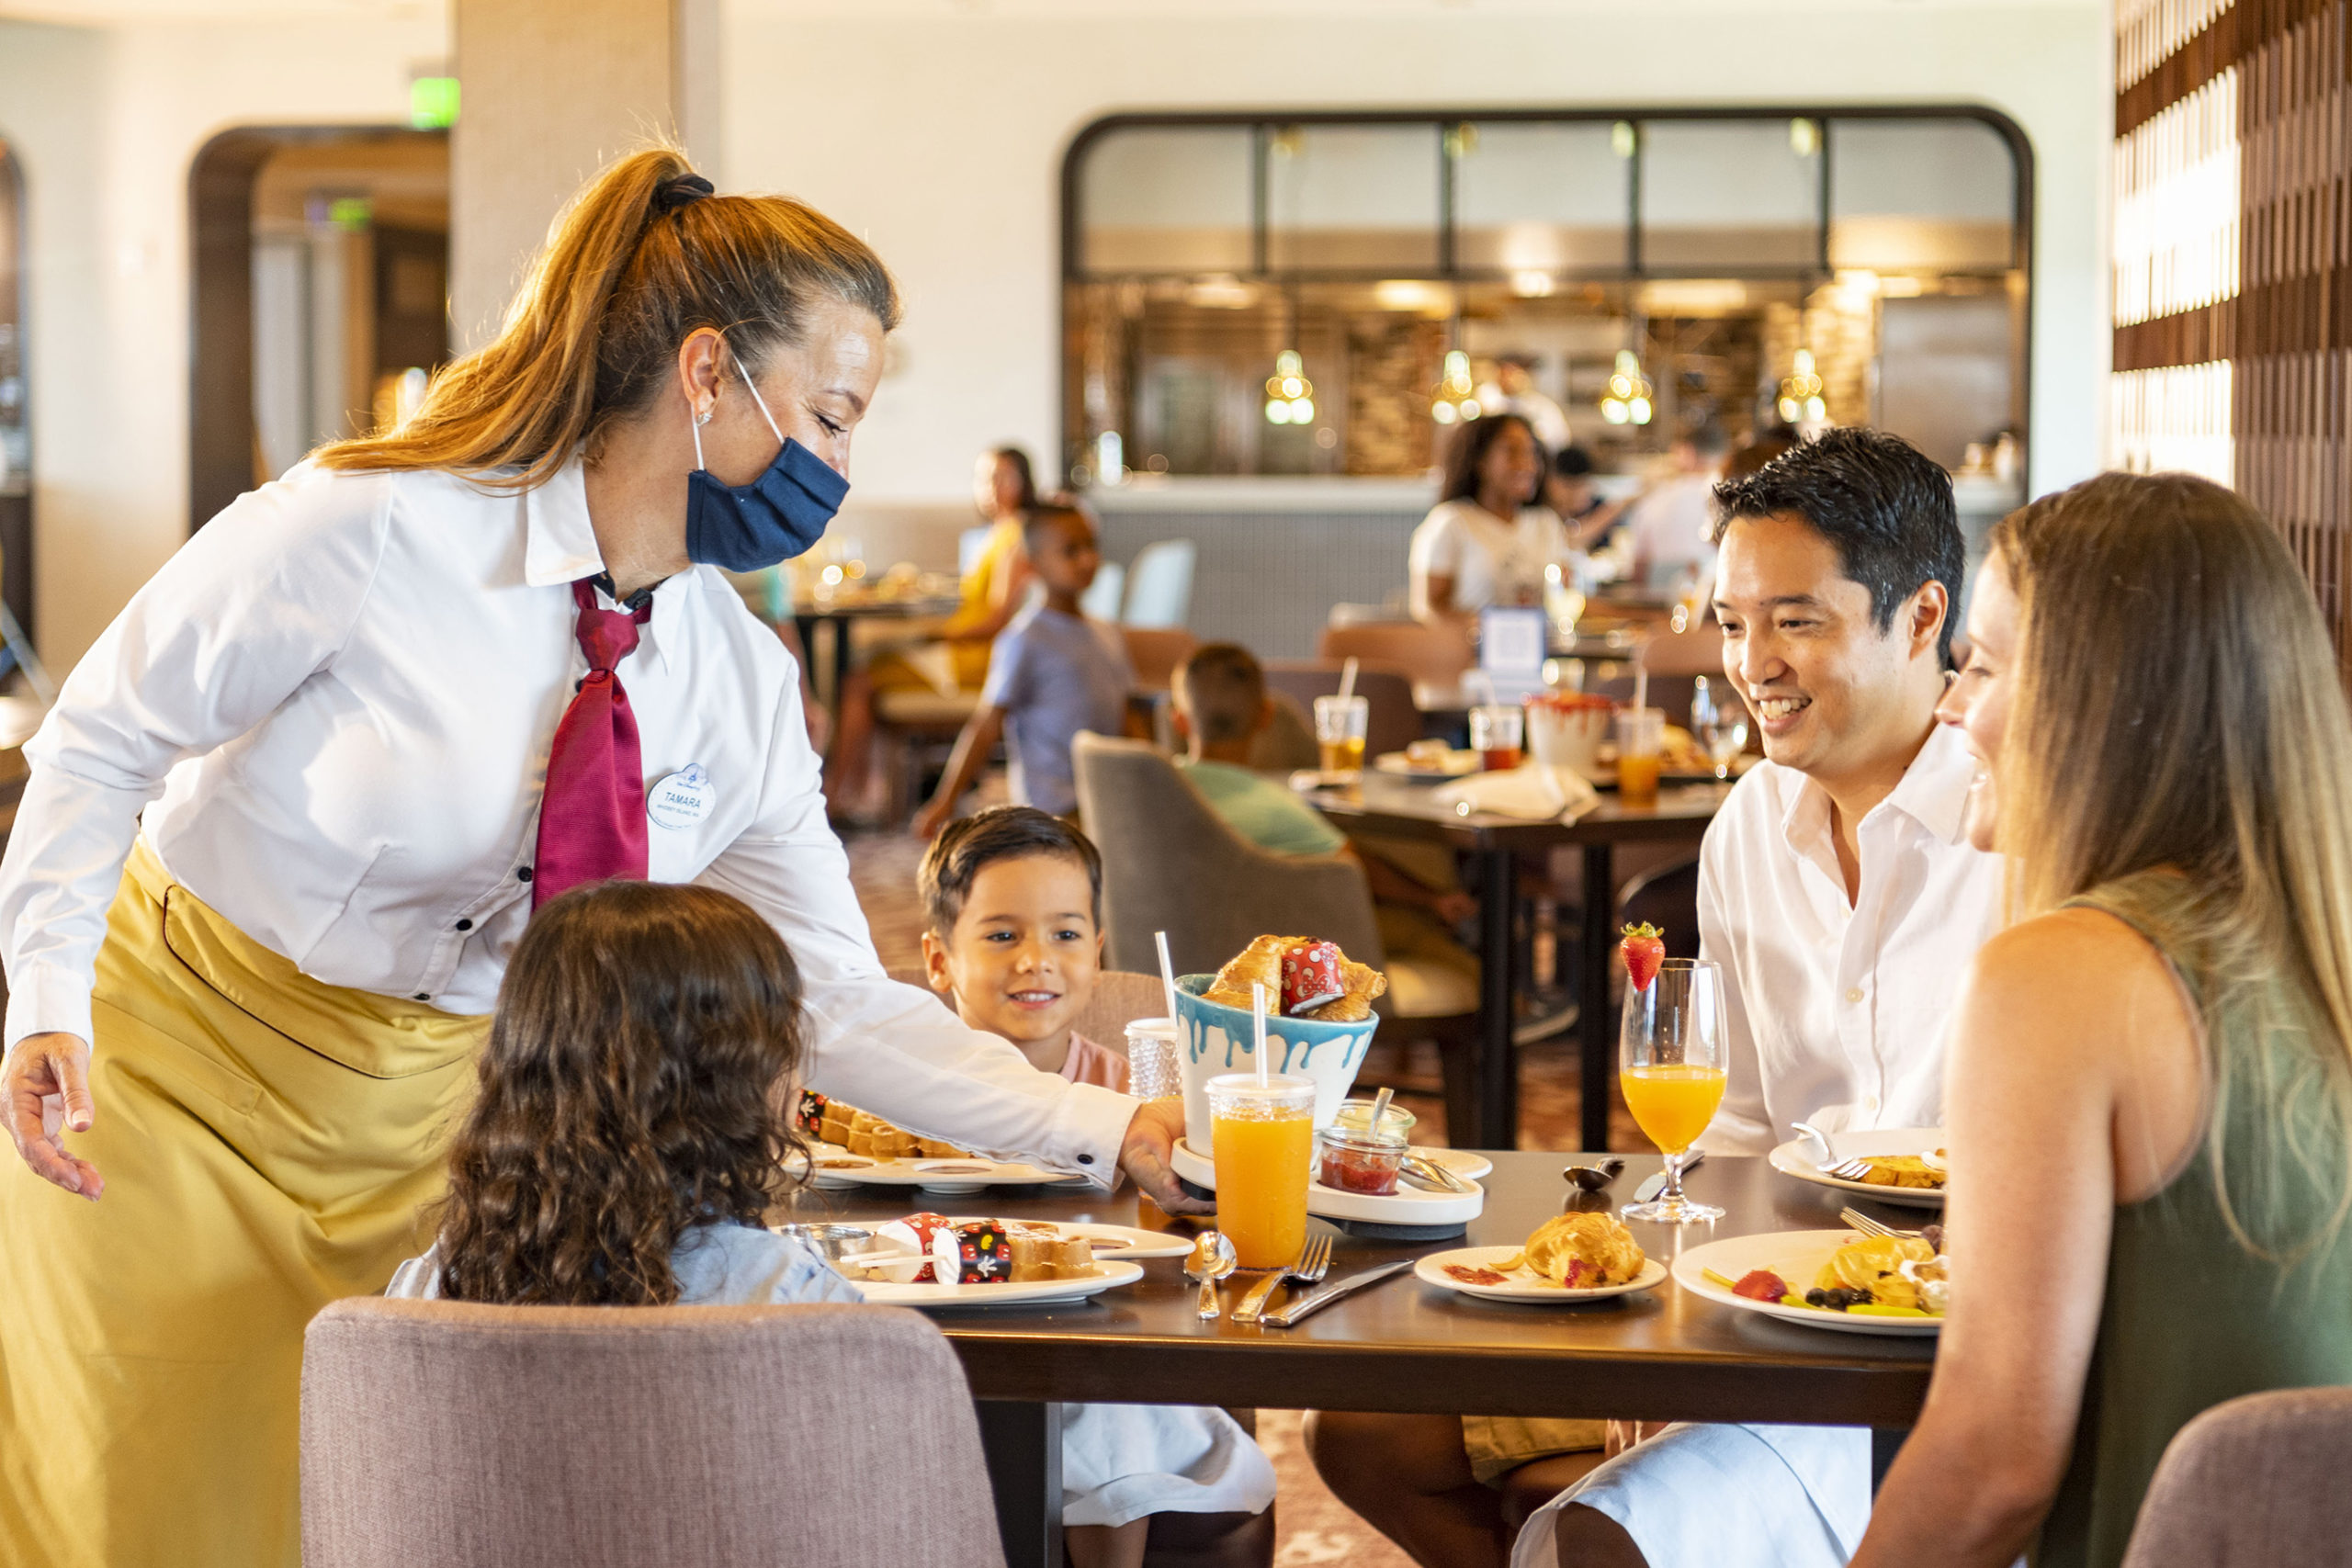 What Are The New Health and Safety Measures At Disney World? Dining 1